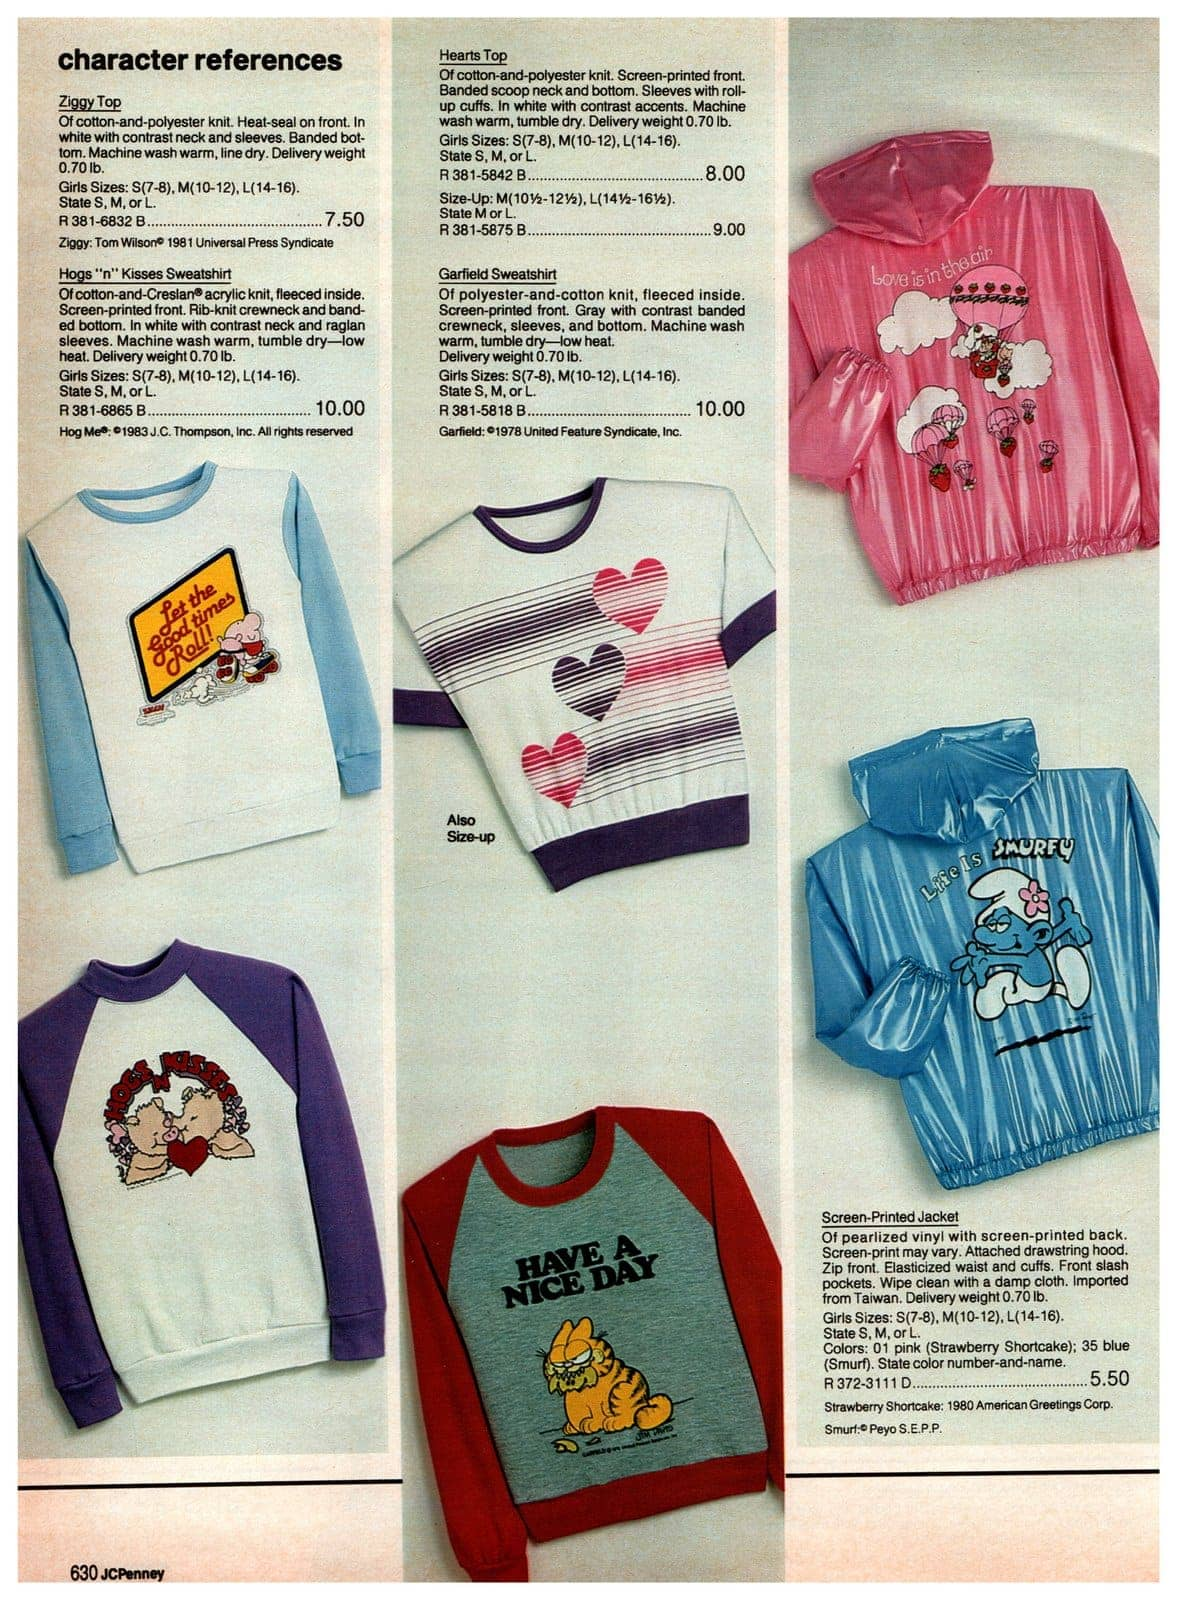 Novelty tops with Ziggy, Hogs 'n' Kisses and Garfield - plus shiny Smurfs and Strawberry Shortcake pearlized vinyl jackets